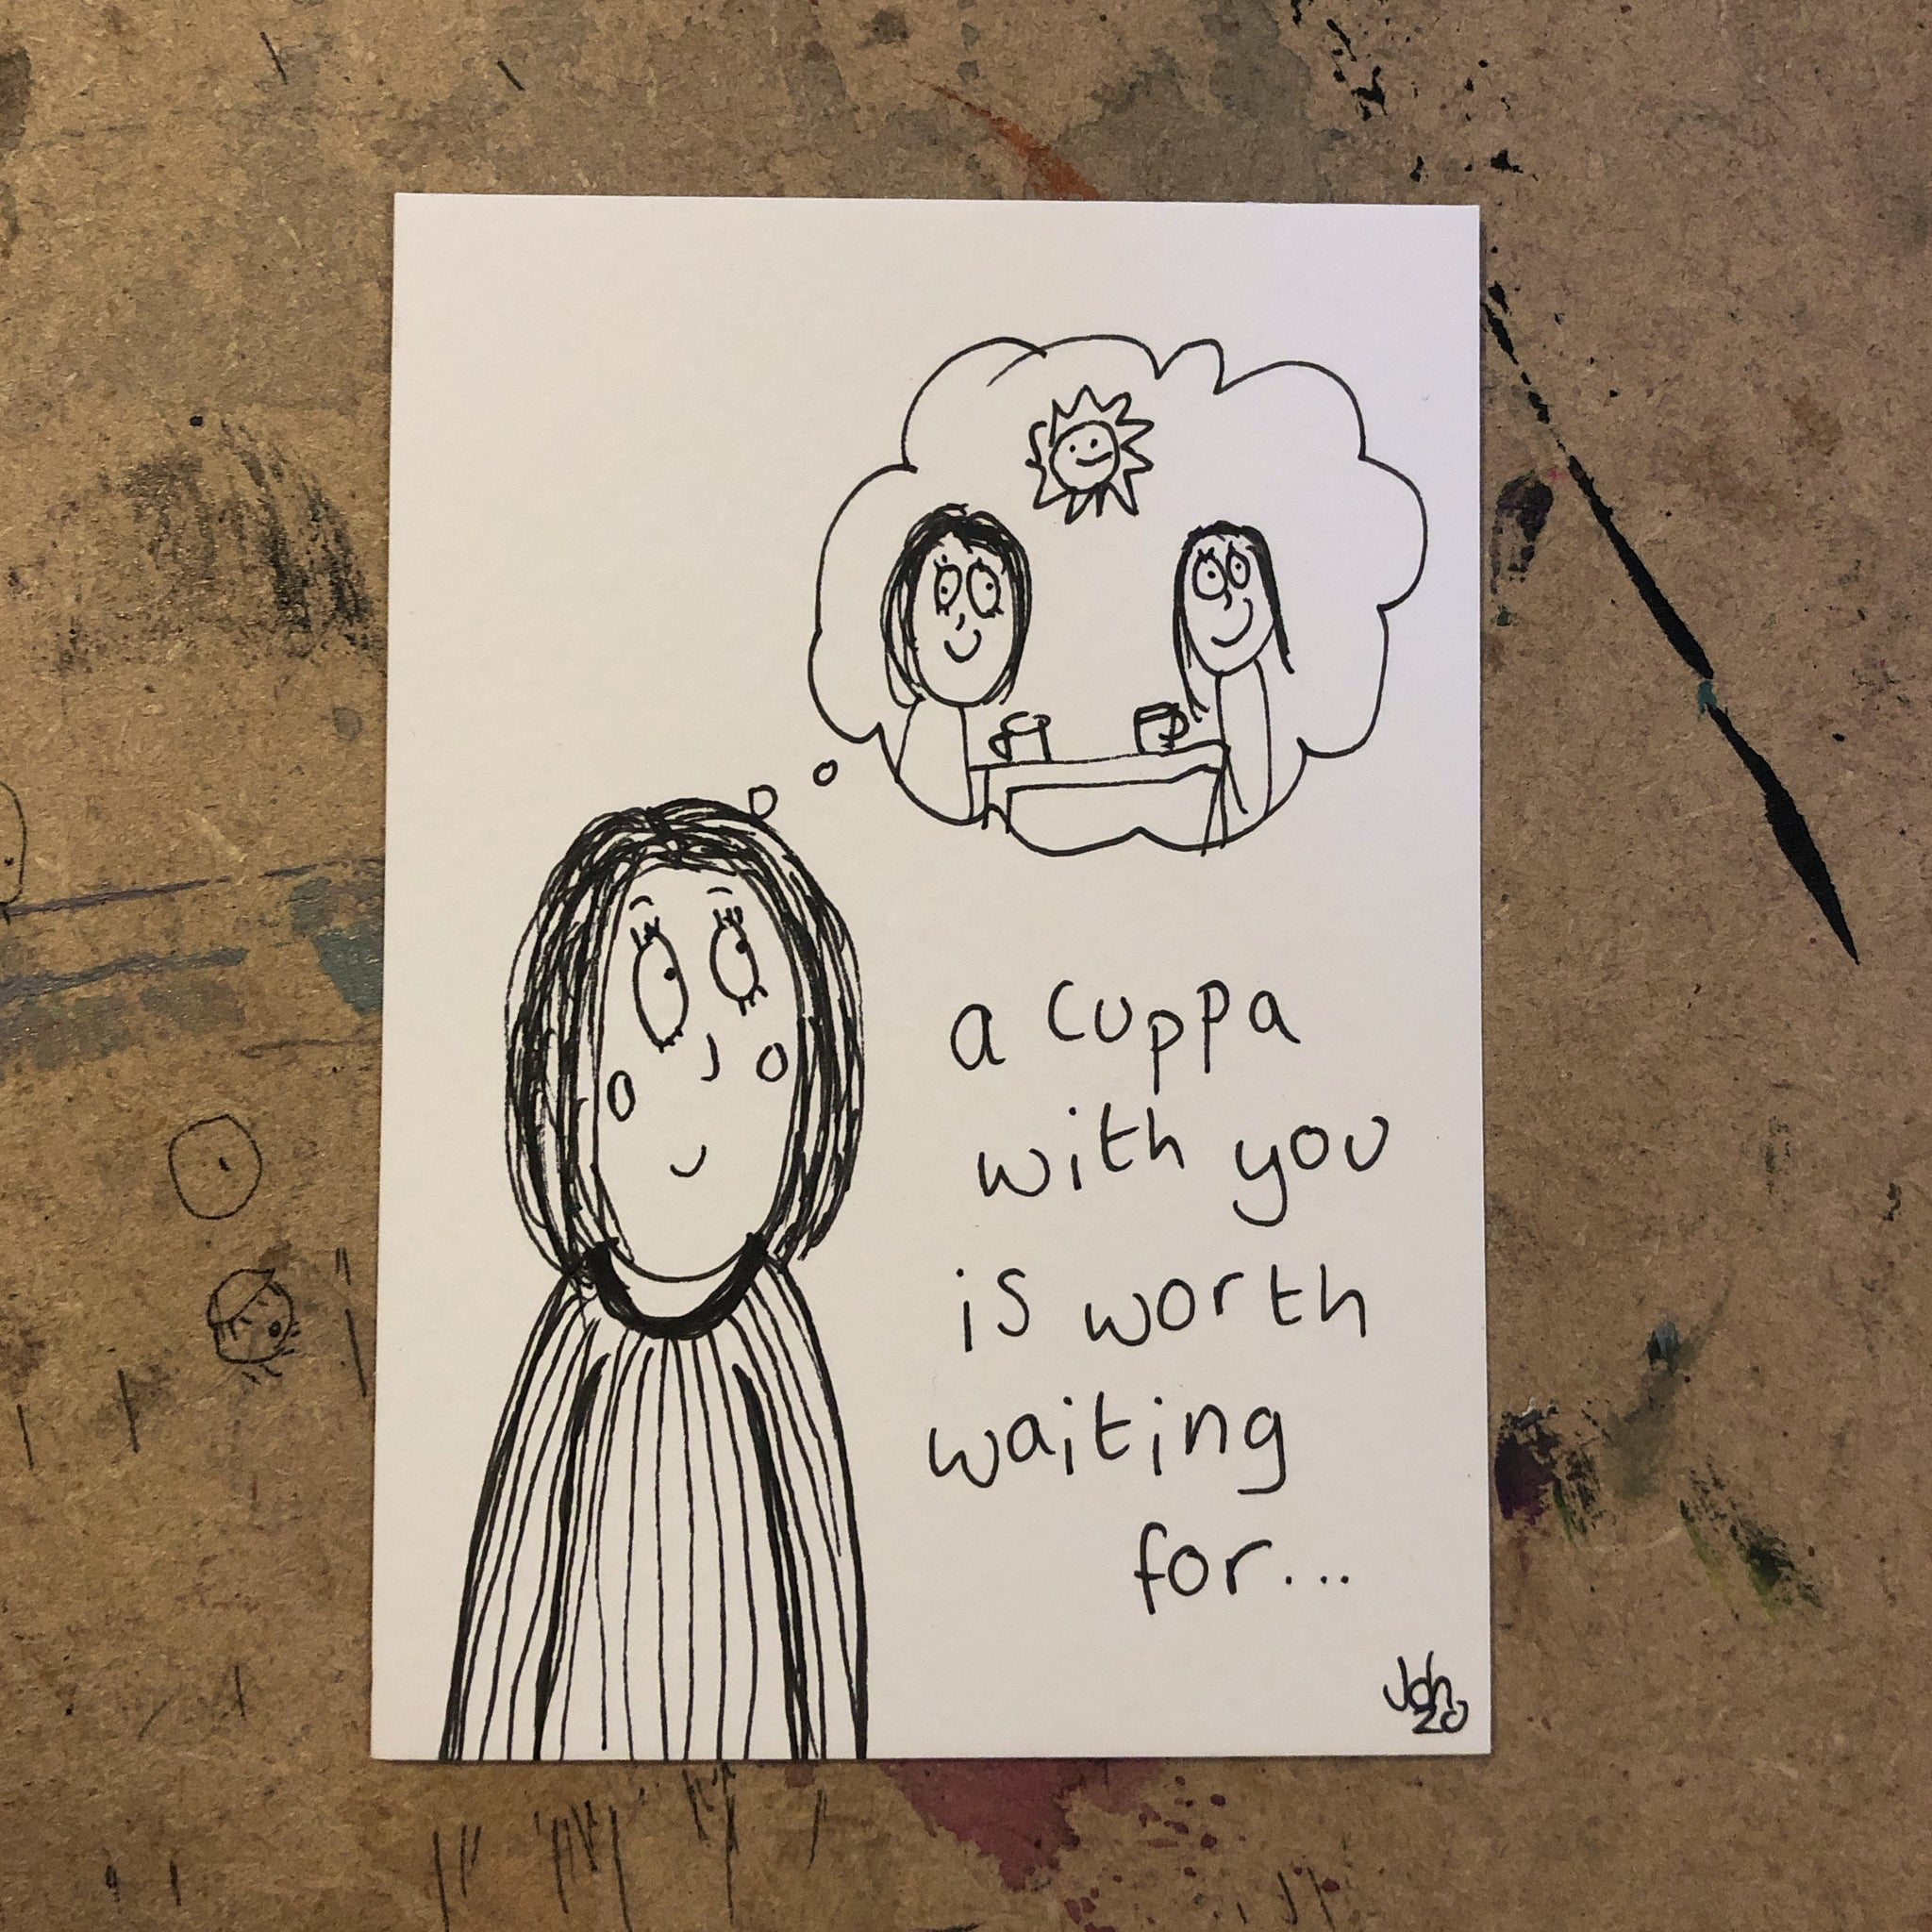 Cuppa - original mini artist card